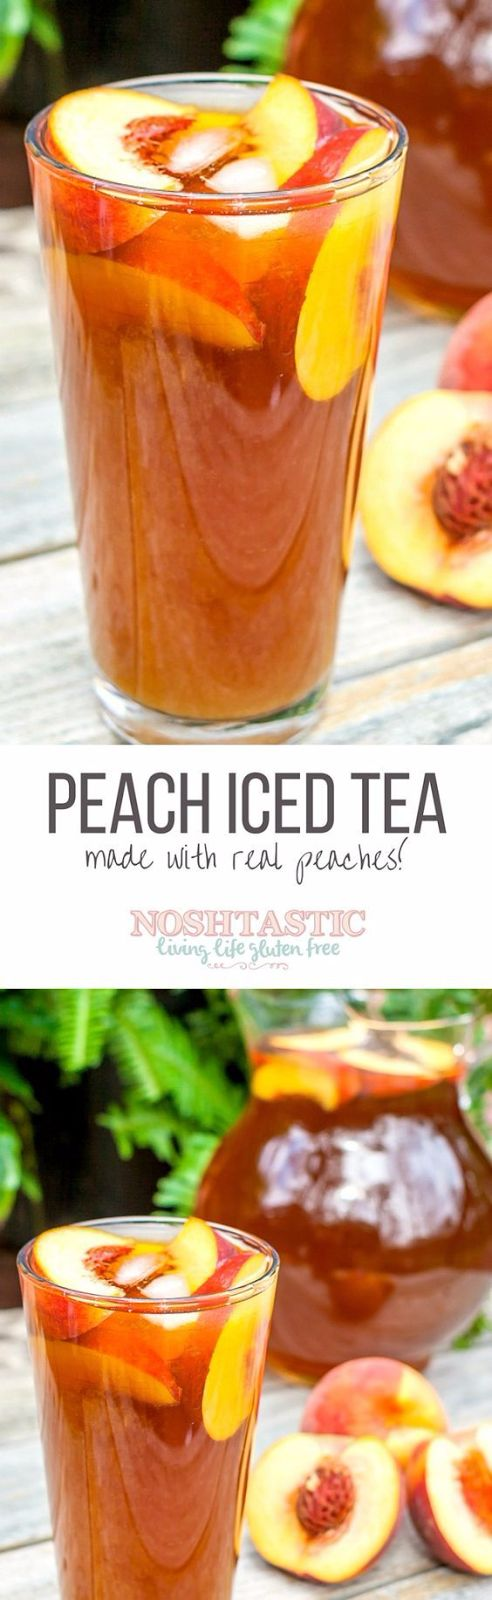 http://www.nytimes.one/2017/07/18/tasty-peach-iced-tea-recipe-made-with-real-peaches-and-only-three-ingredients/